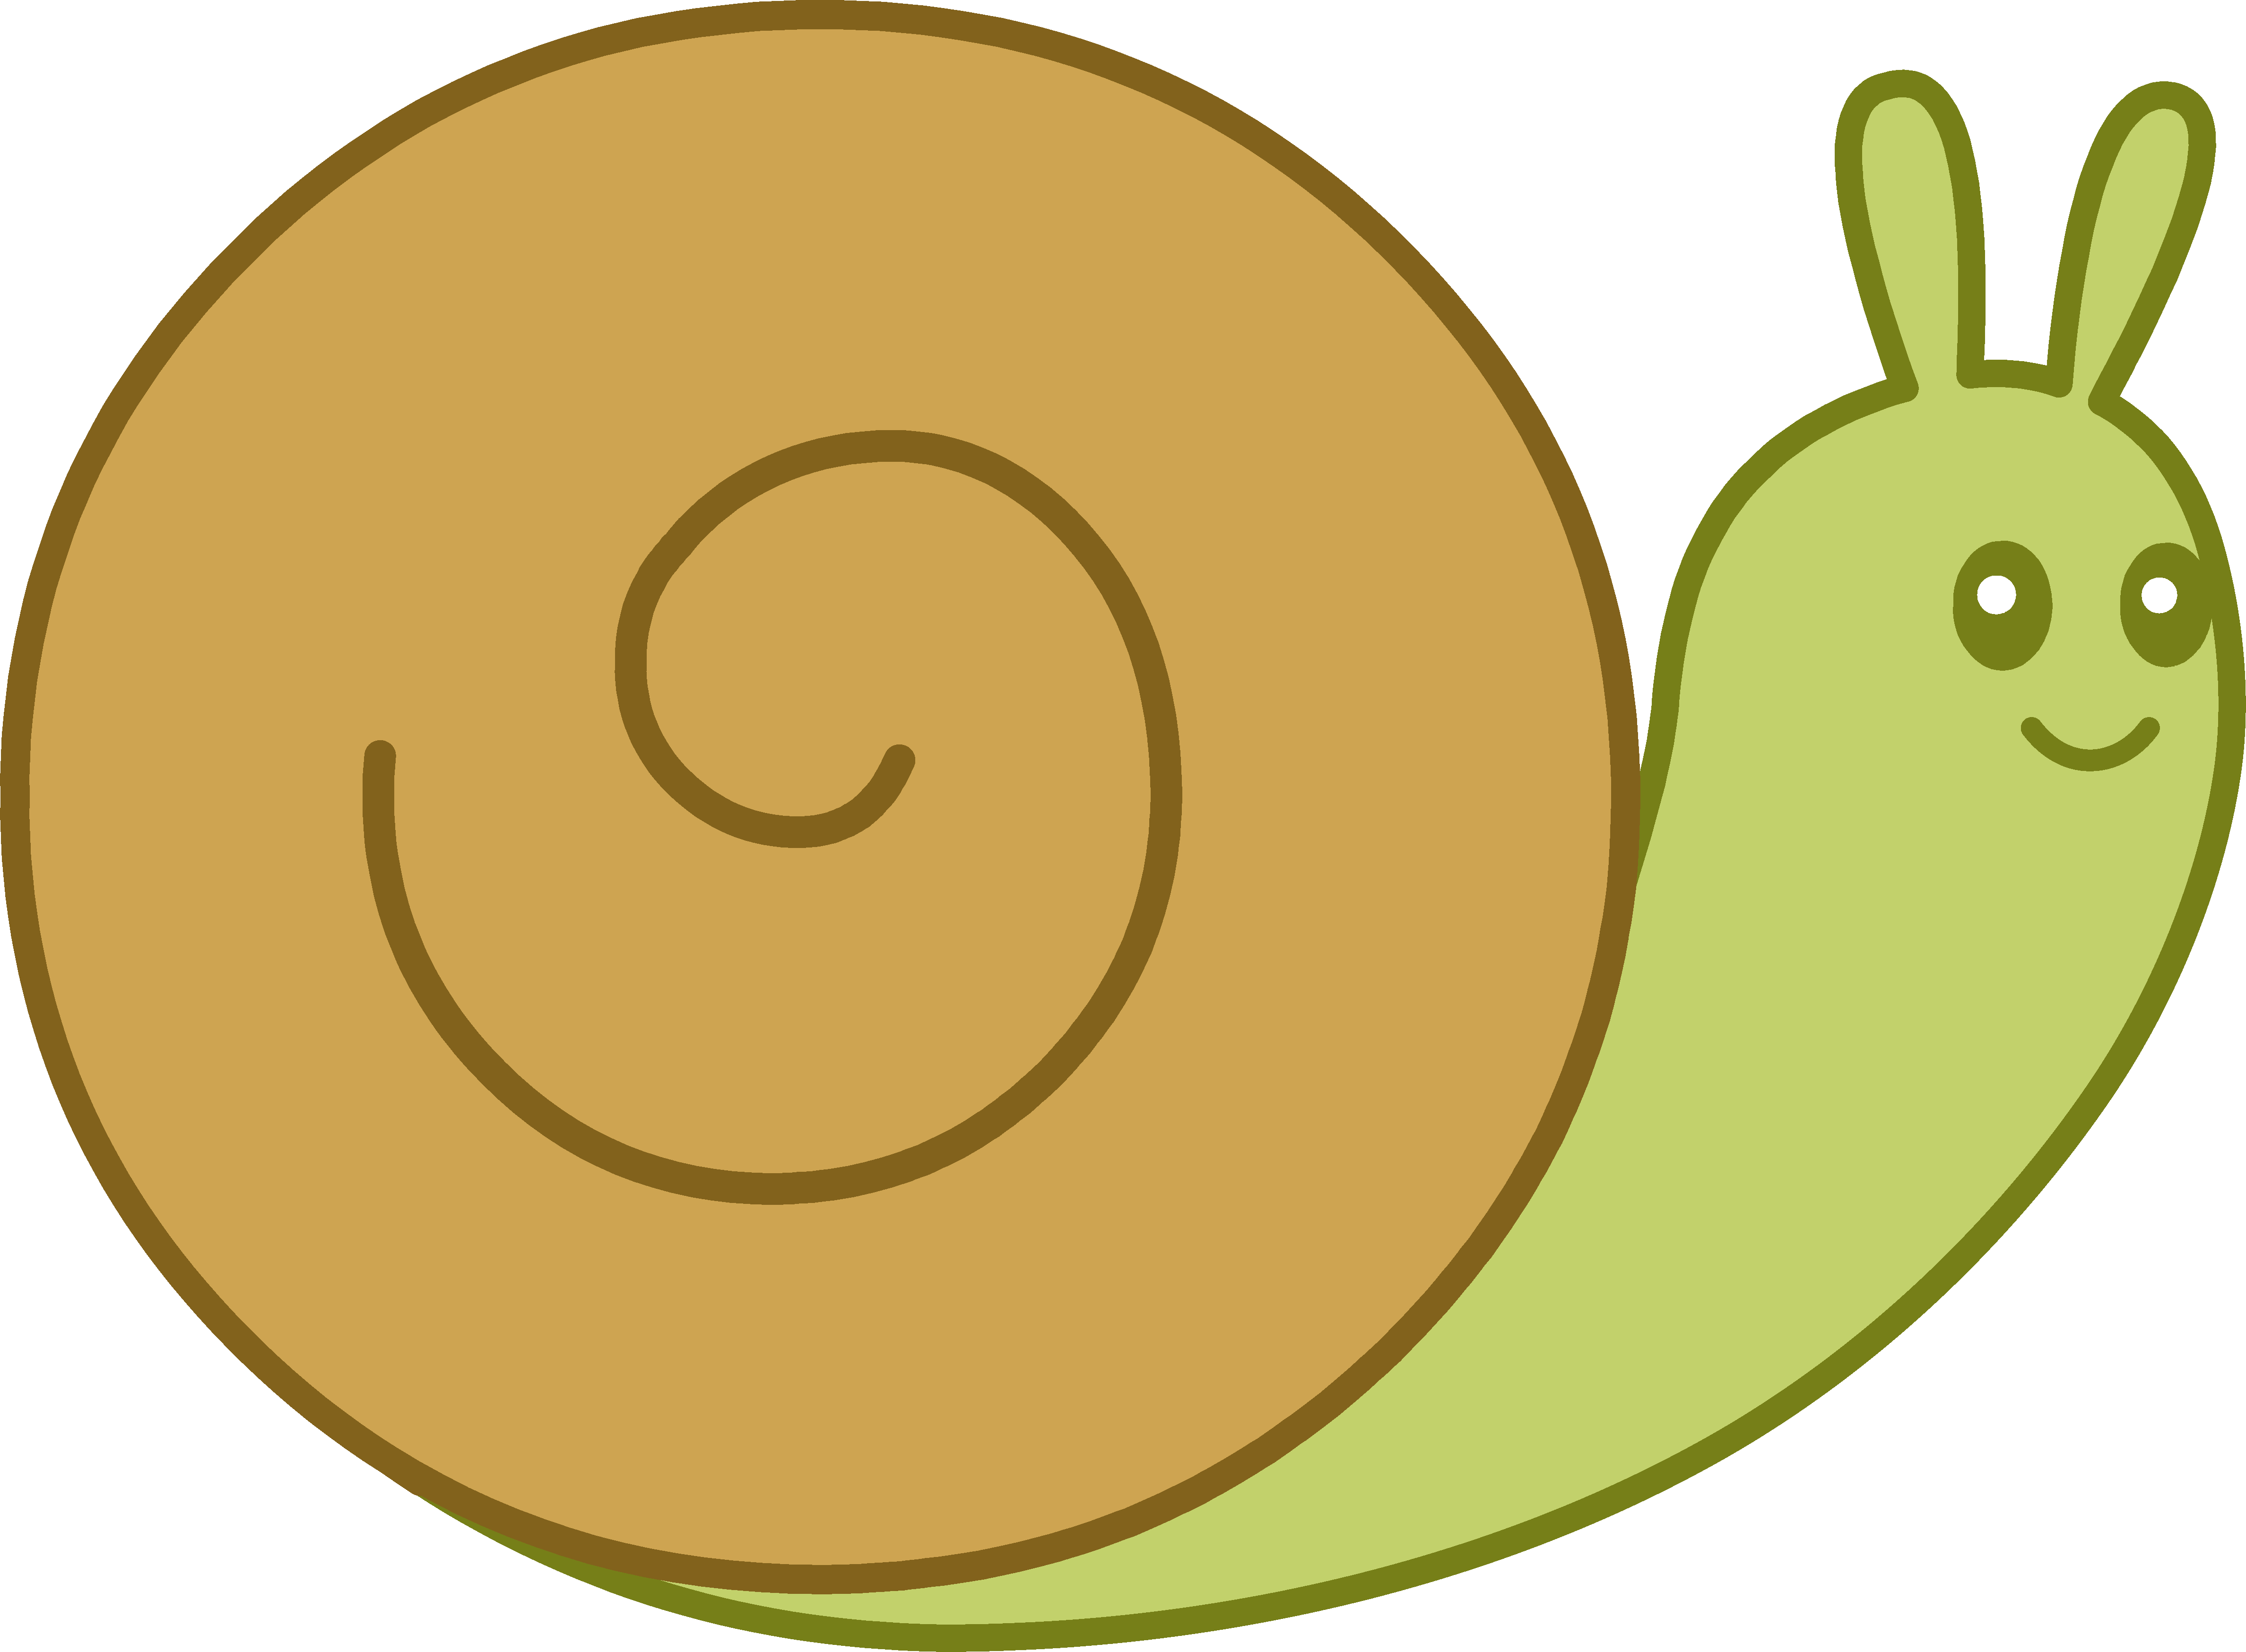 Angry snail png. Snails clip art library